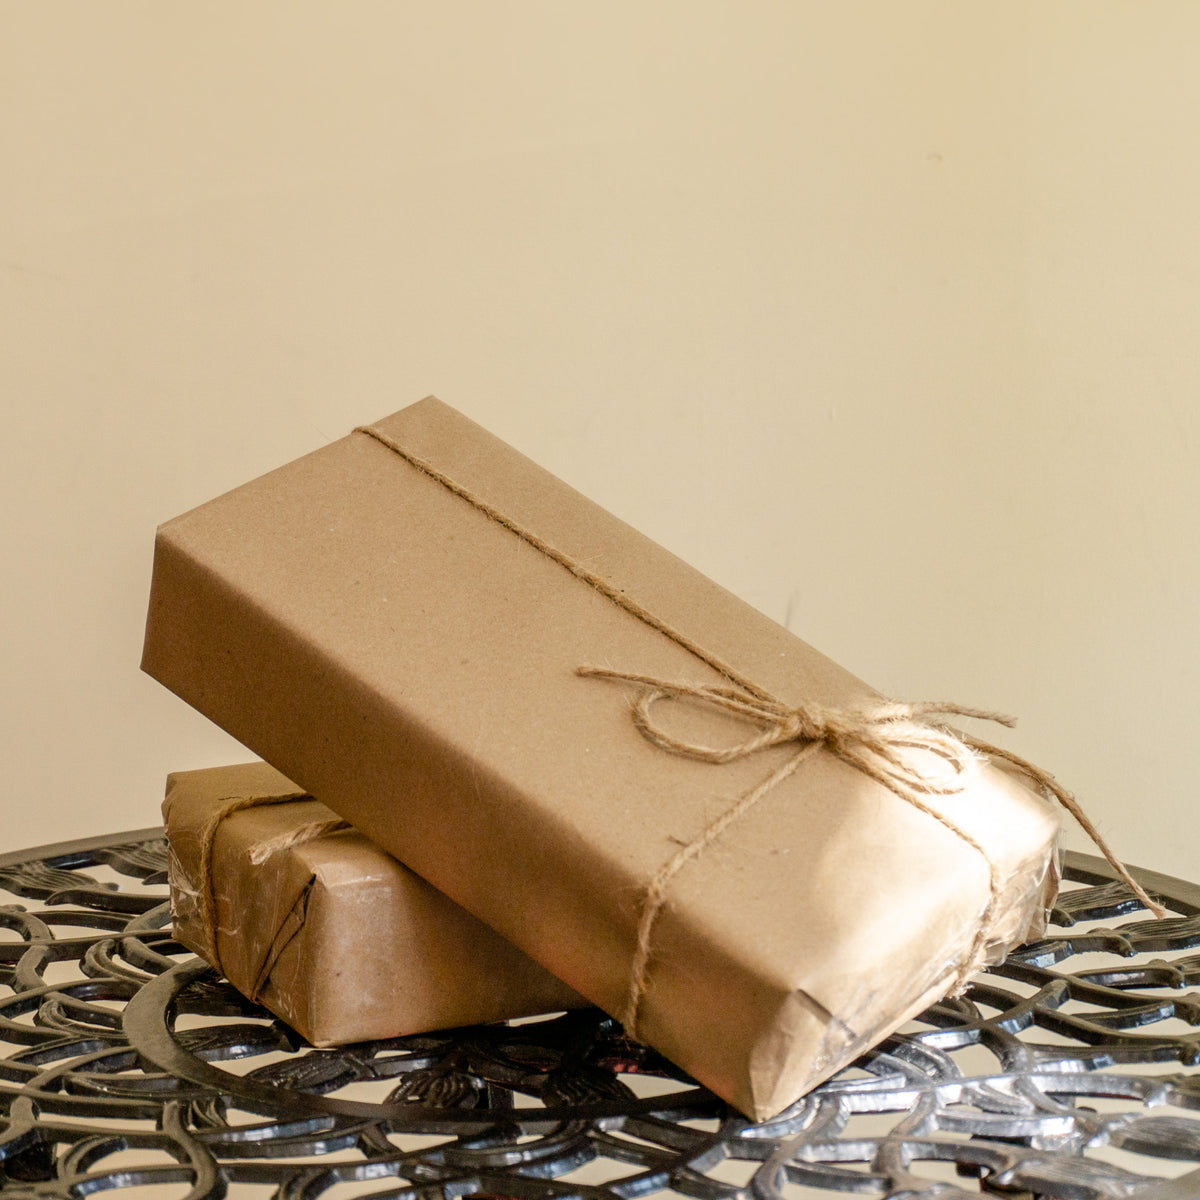 Mystery Salt Box - Send a customized gift straight to their door!